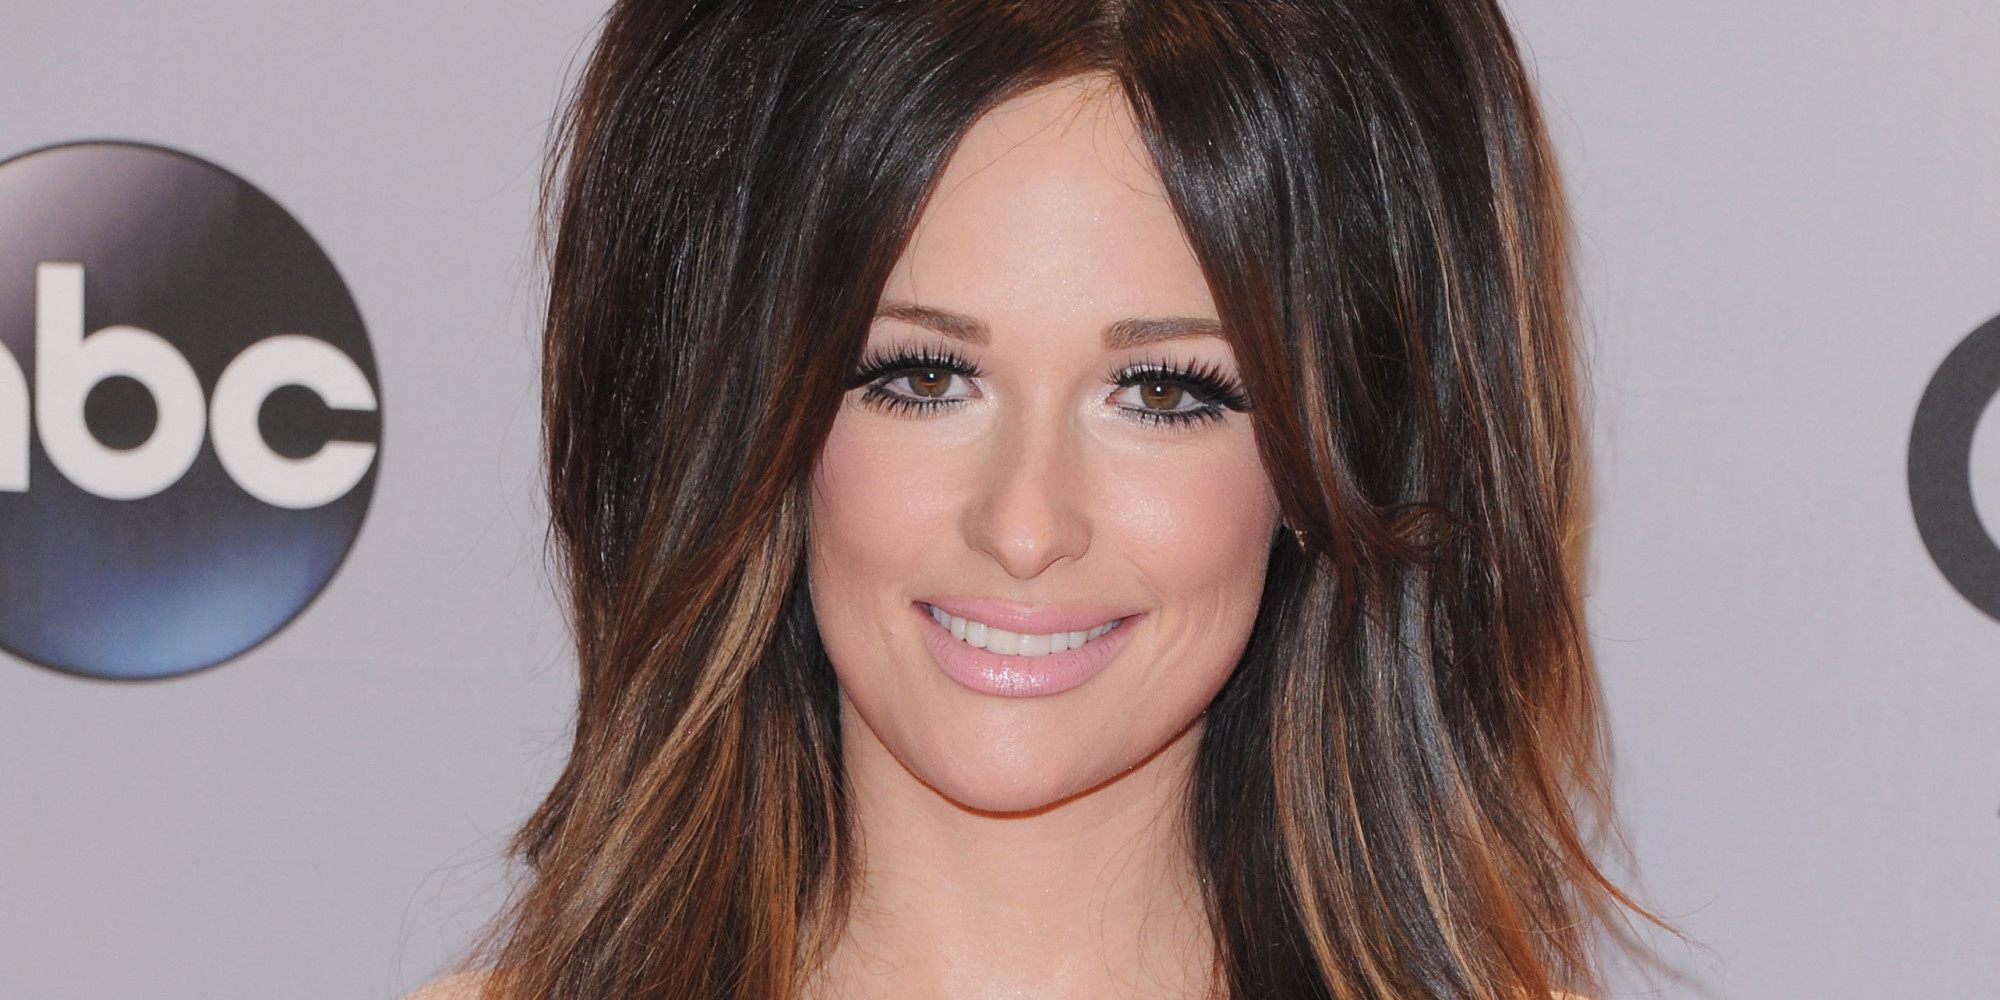 Kacey Musgraves: Kacey Musgraves' Hair Takes Over The 2014 CMA Awards Red